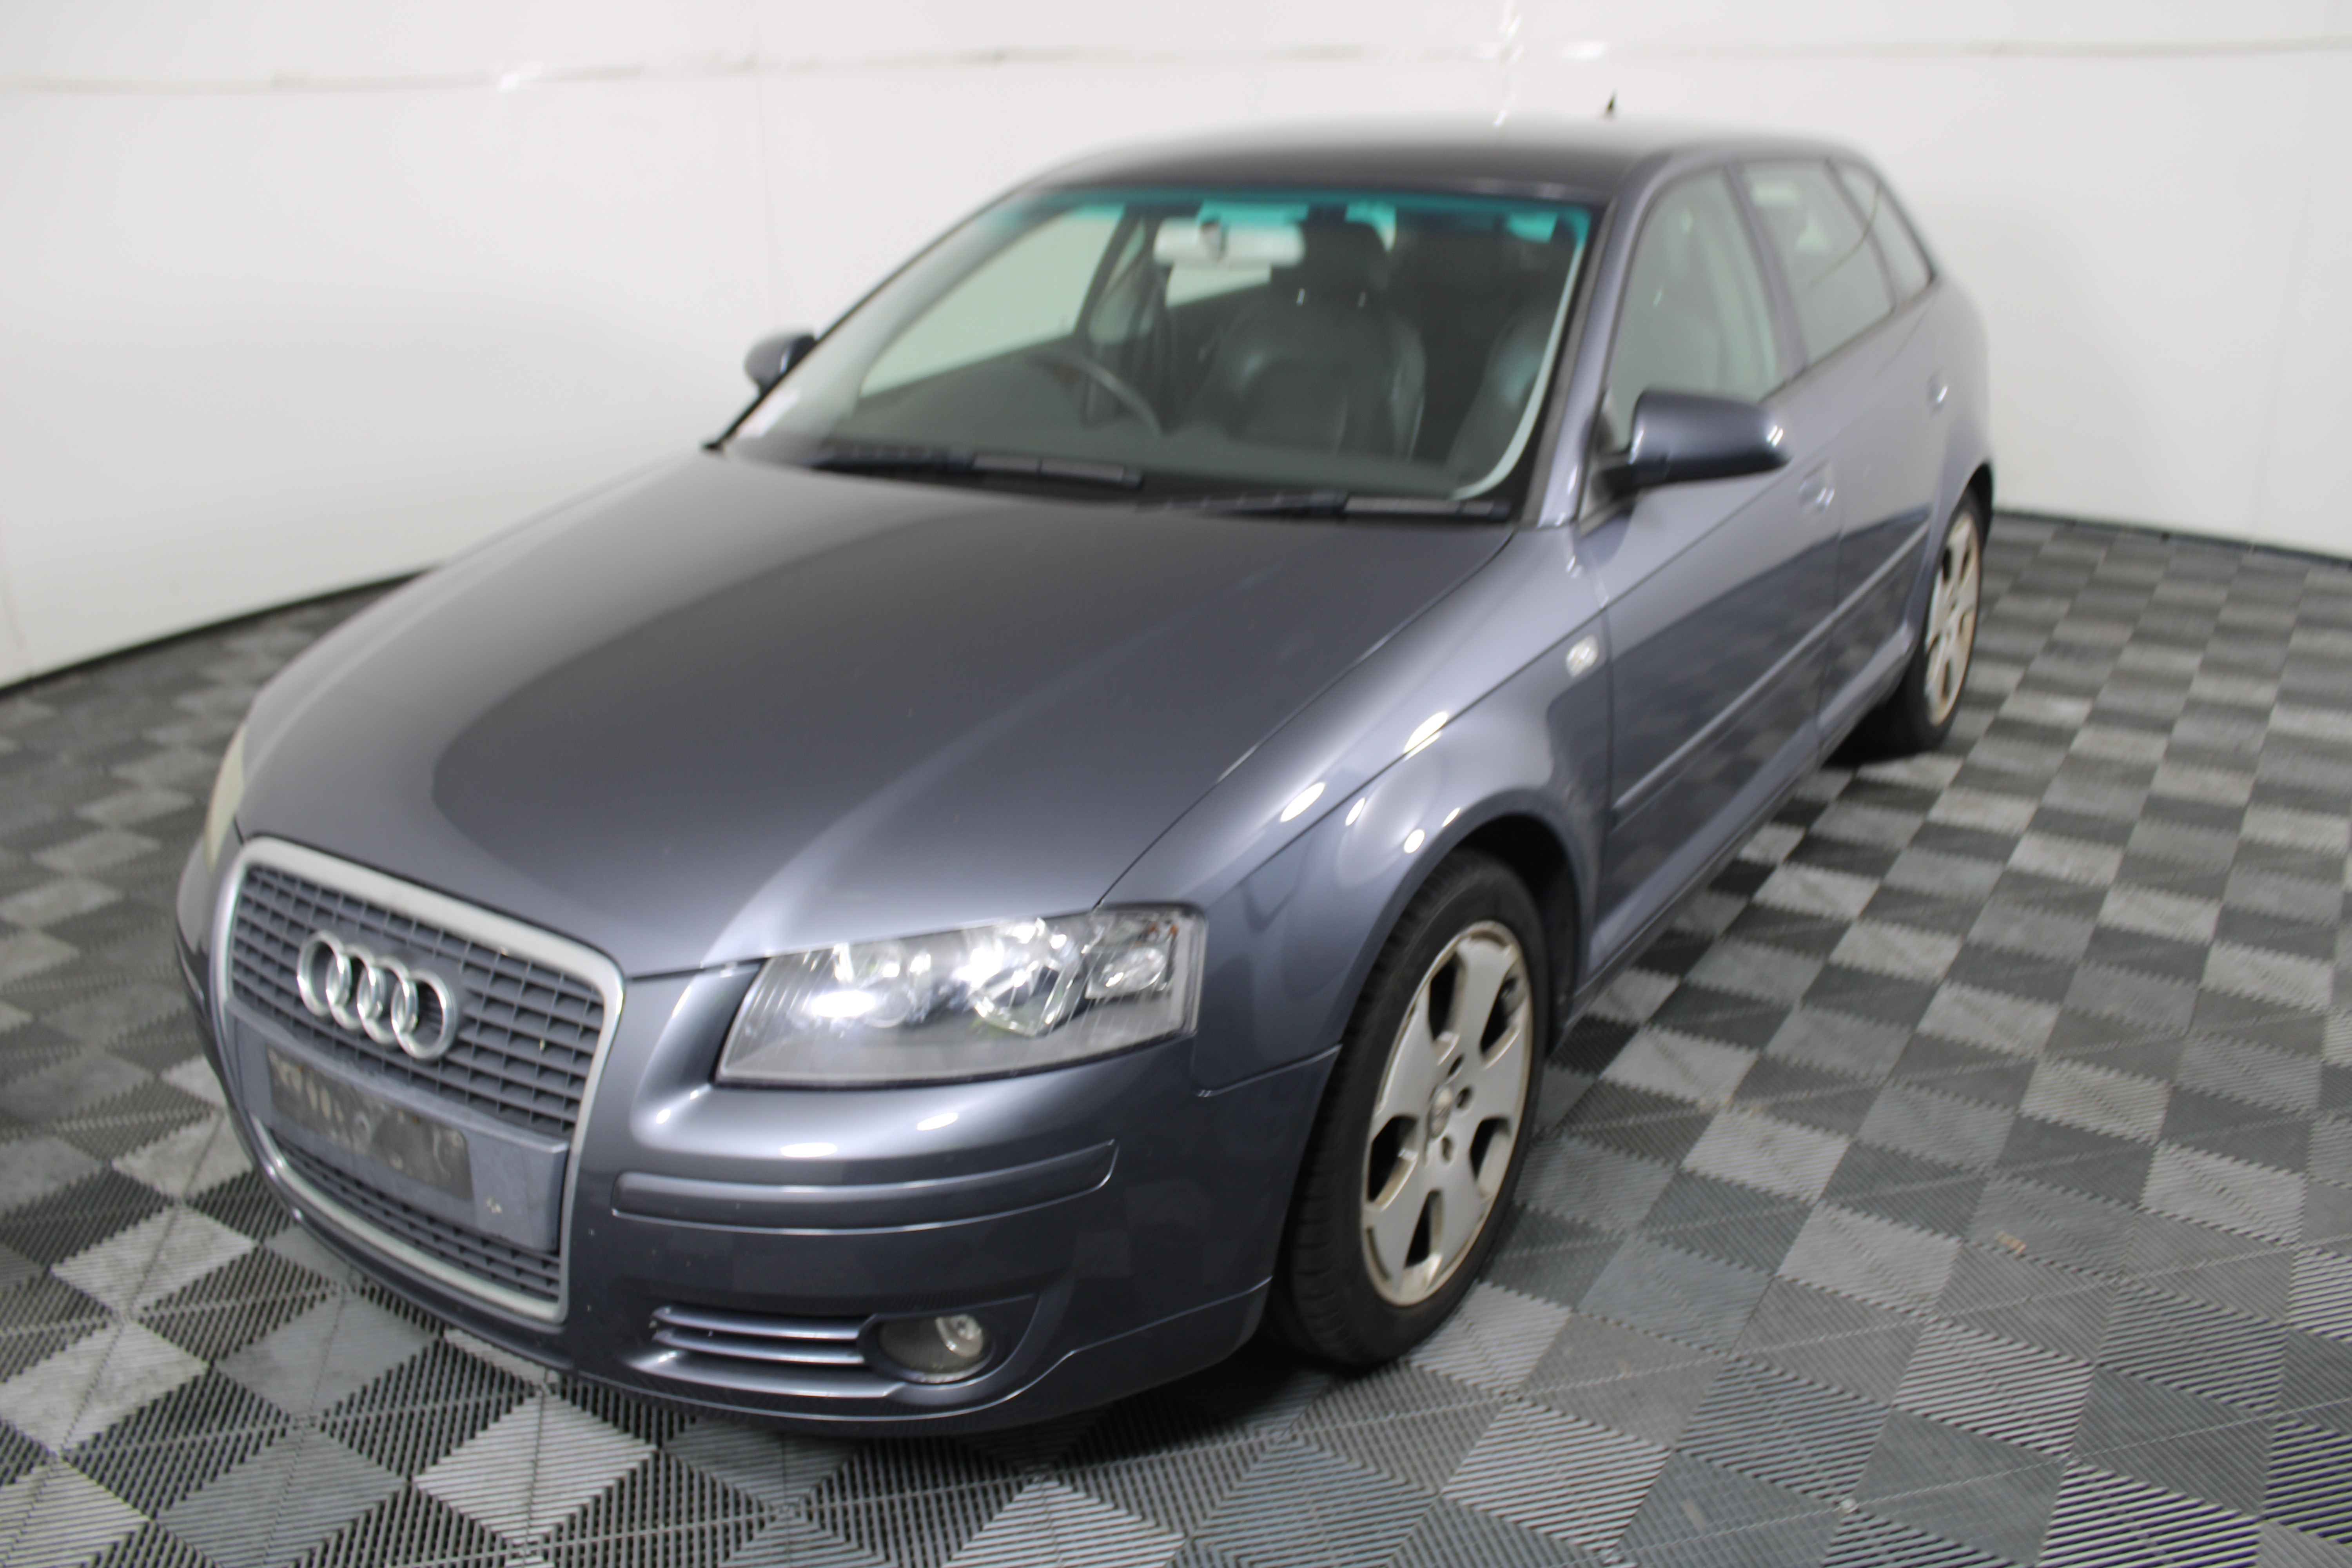 2006 Audi A3 2.0 FSI Ambition Automatic Hatchback